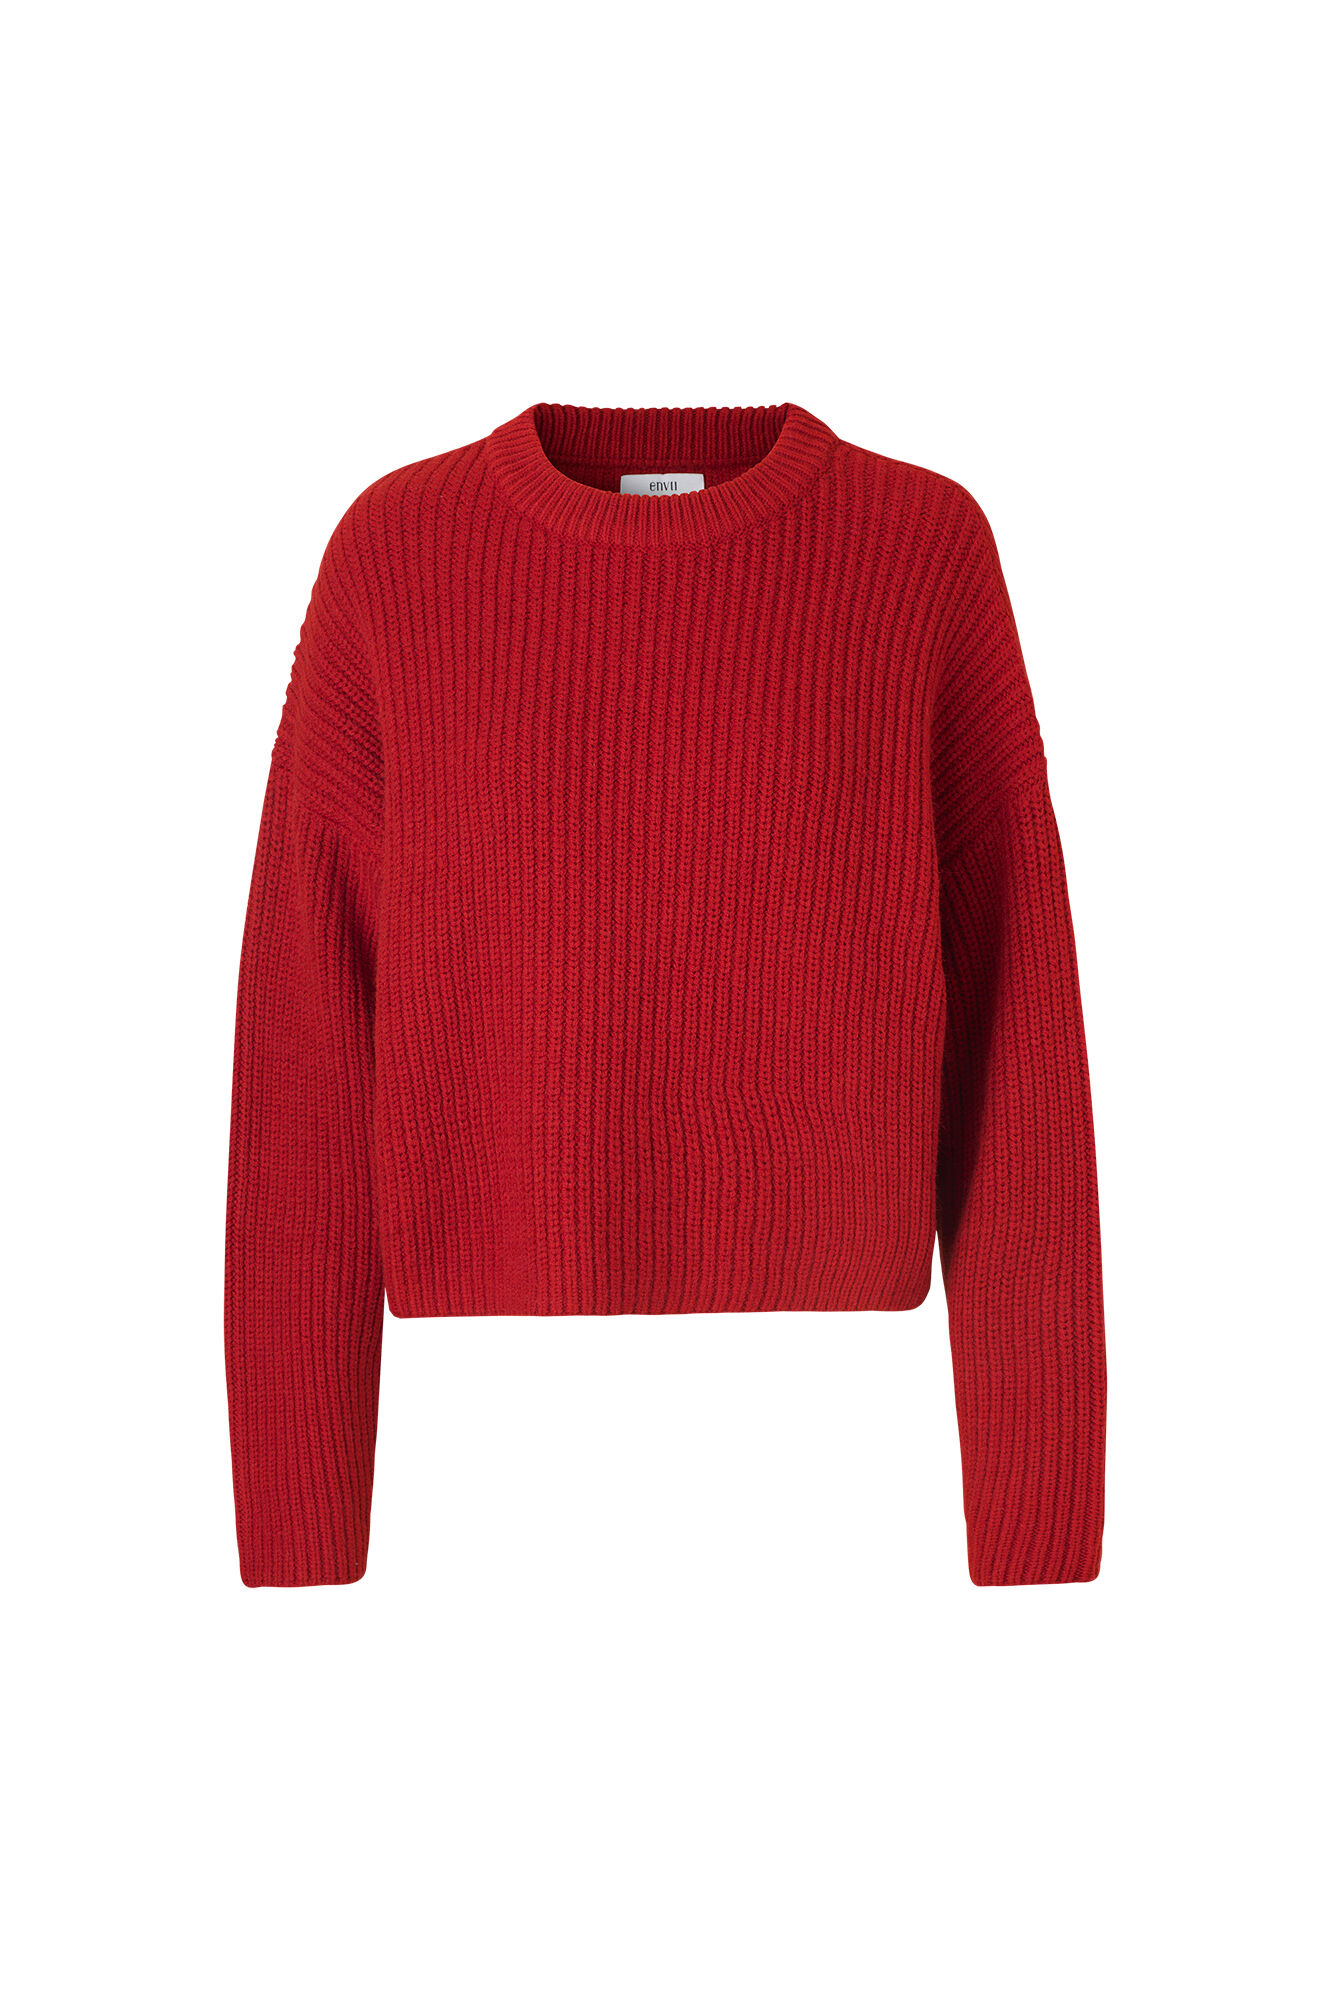 ENTAI LS DROP KNIT 5166, POMPEIAN RED